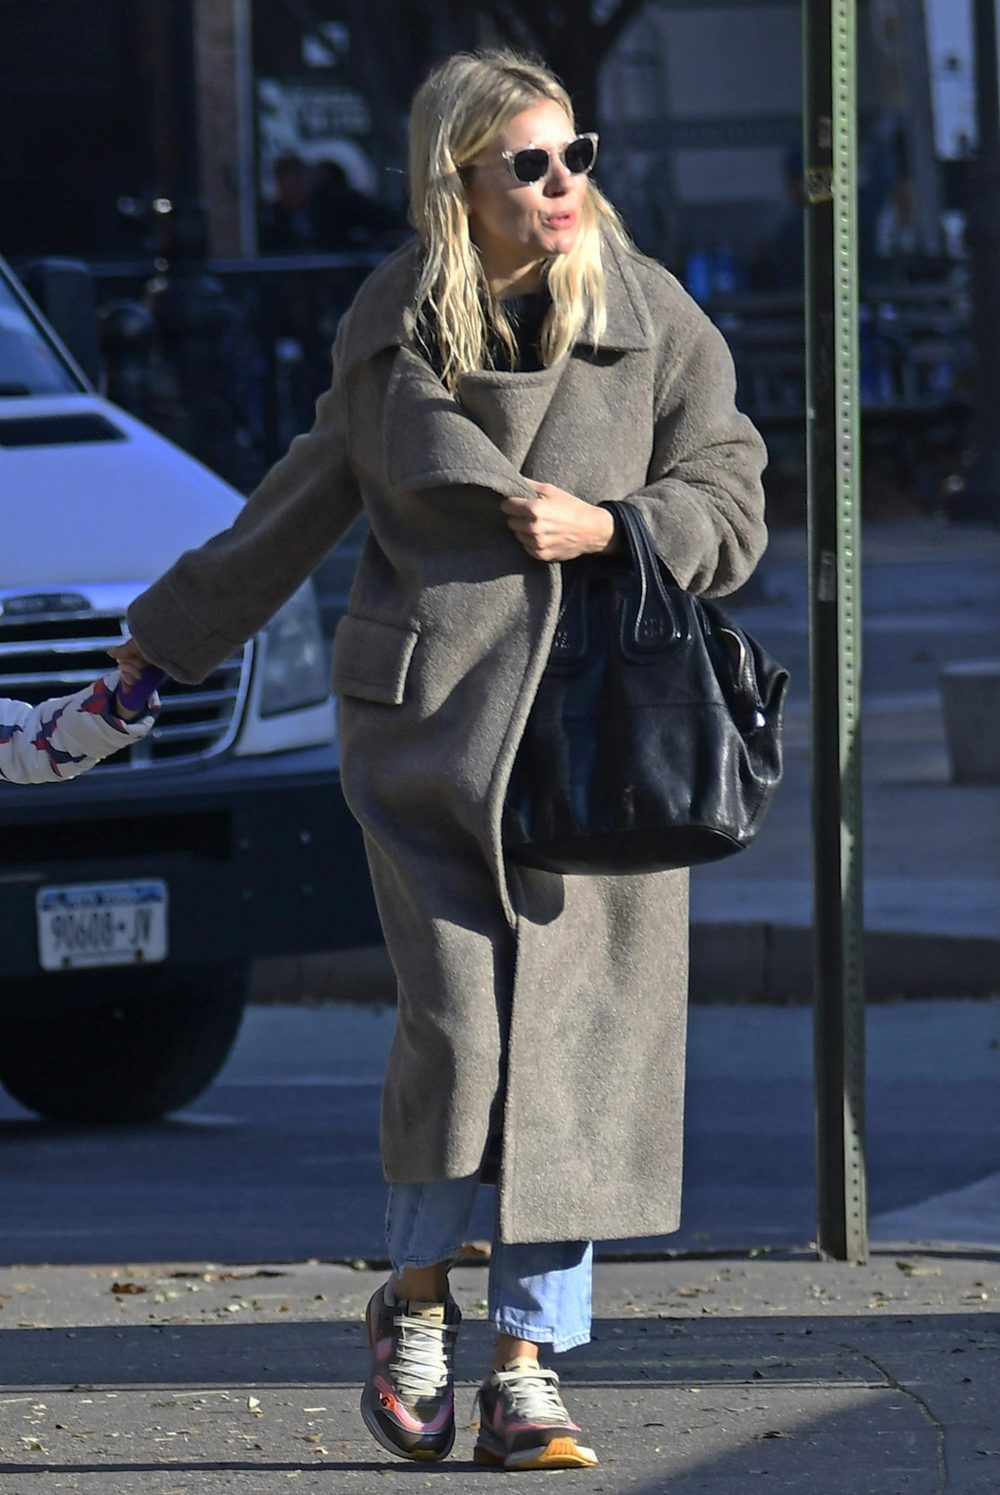 Sienna Miller walking in New York City wearing a greige Smythe teddy coat.